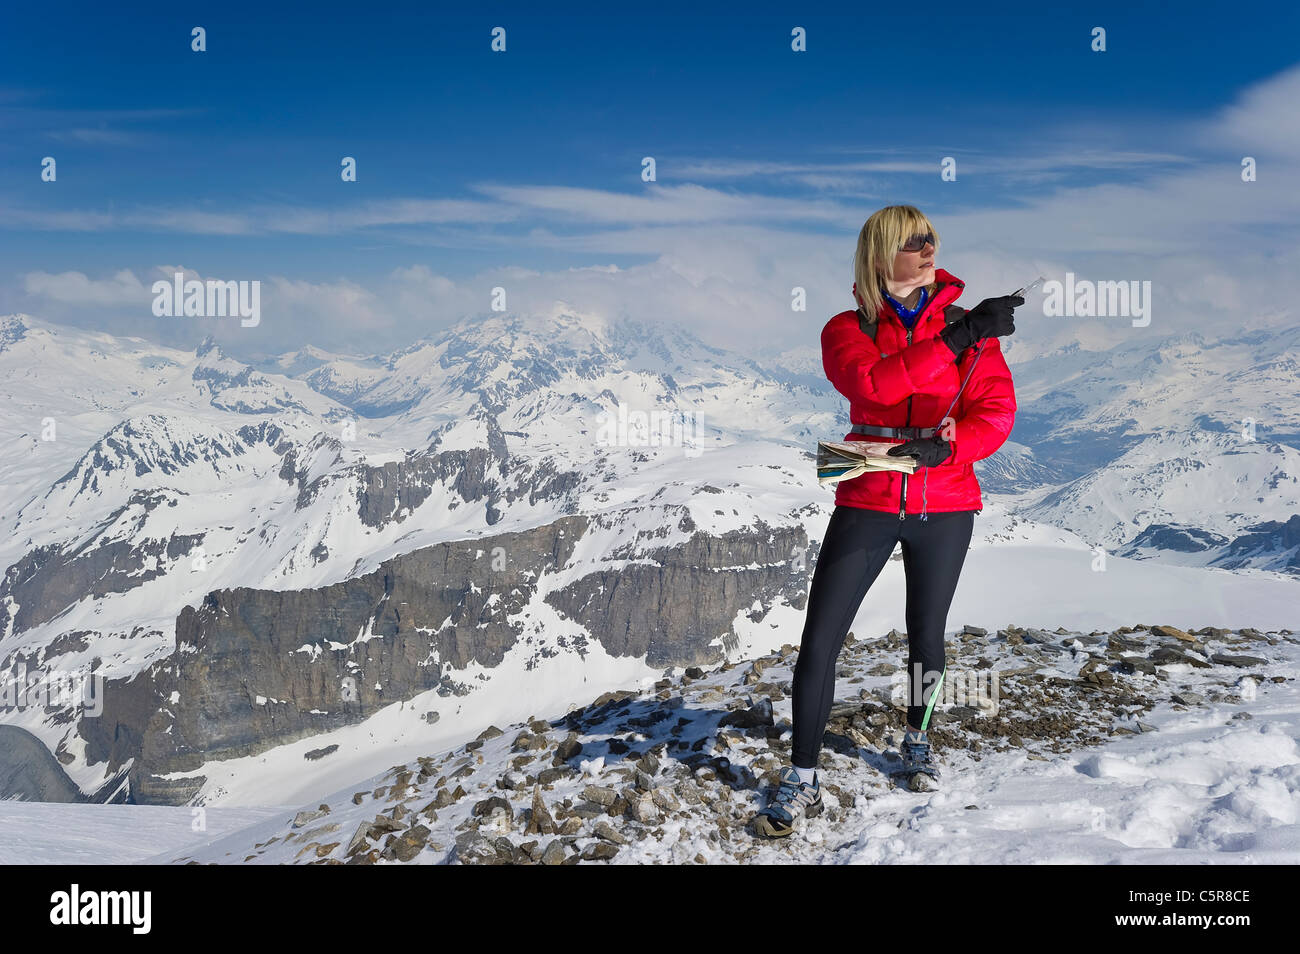 A women orienteering in high altitude mountains. - Stock Image